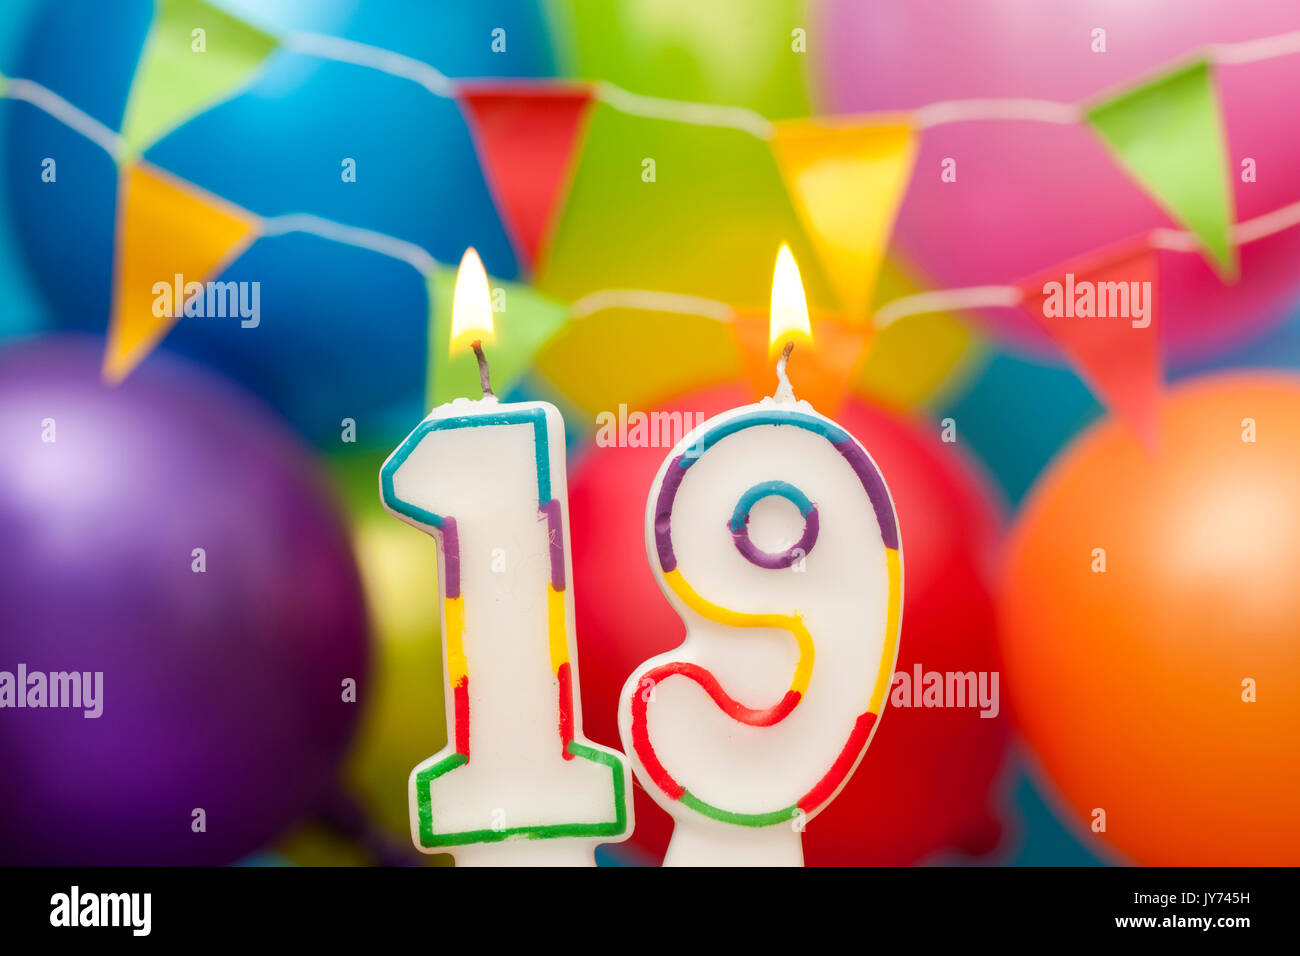 Happy Birthday Number 19 Celebration Candle With Colorful Balloons And Bunting